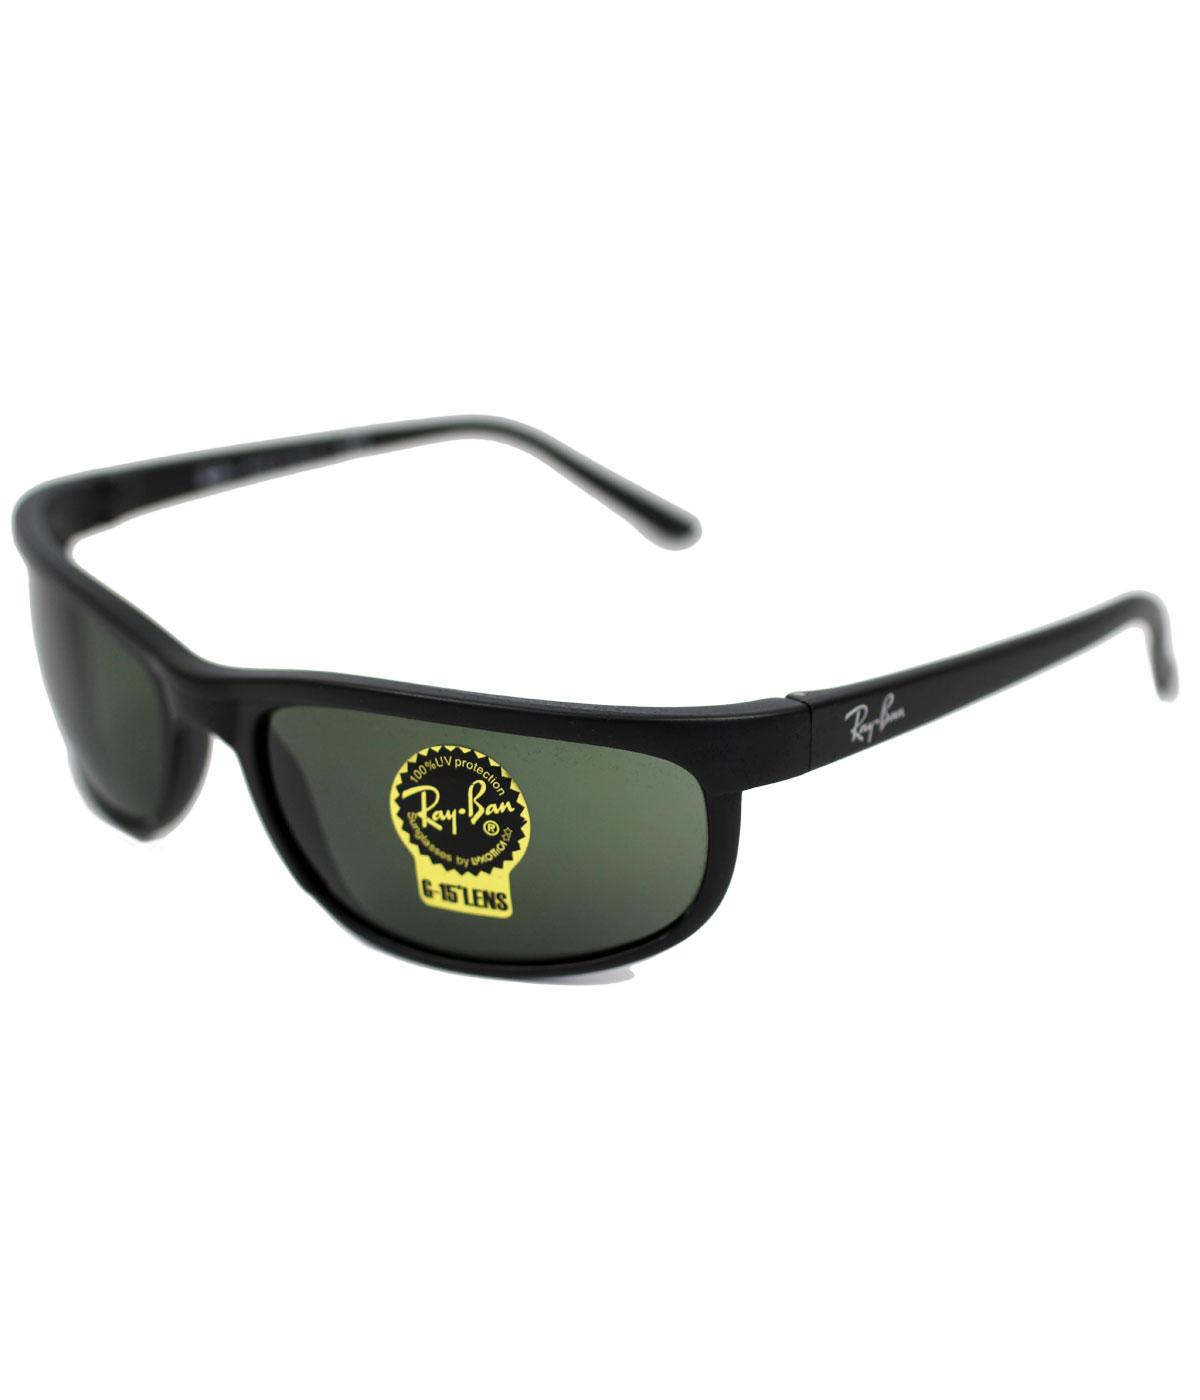 Ray-Ban Predator Retro Wrap Round G-15 Sunglasses